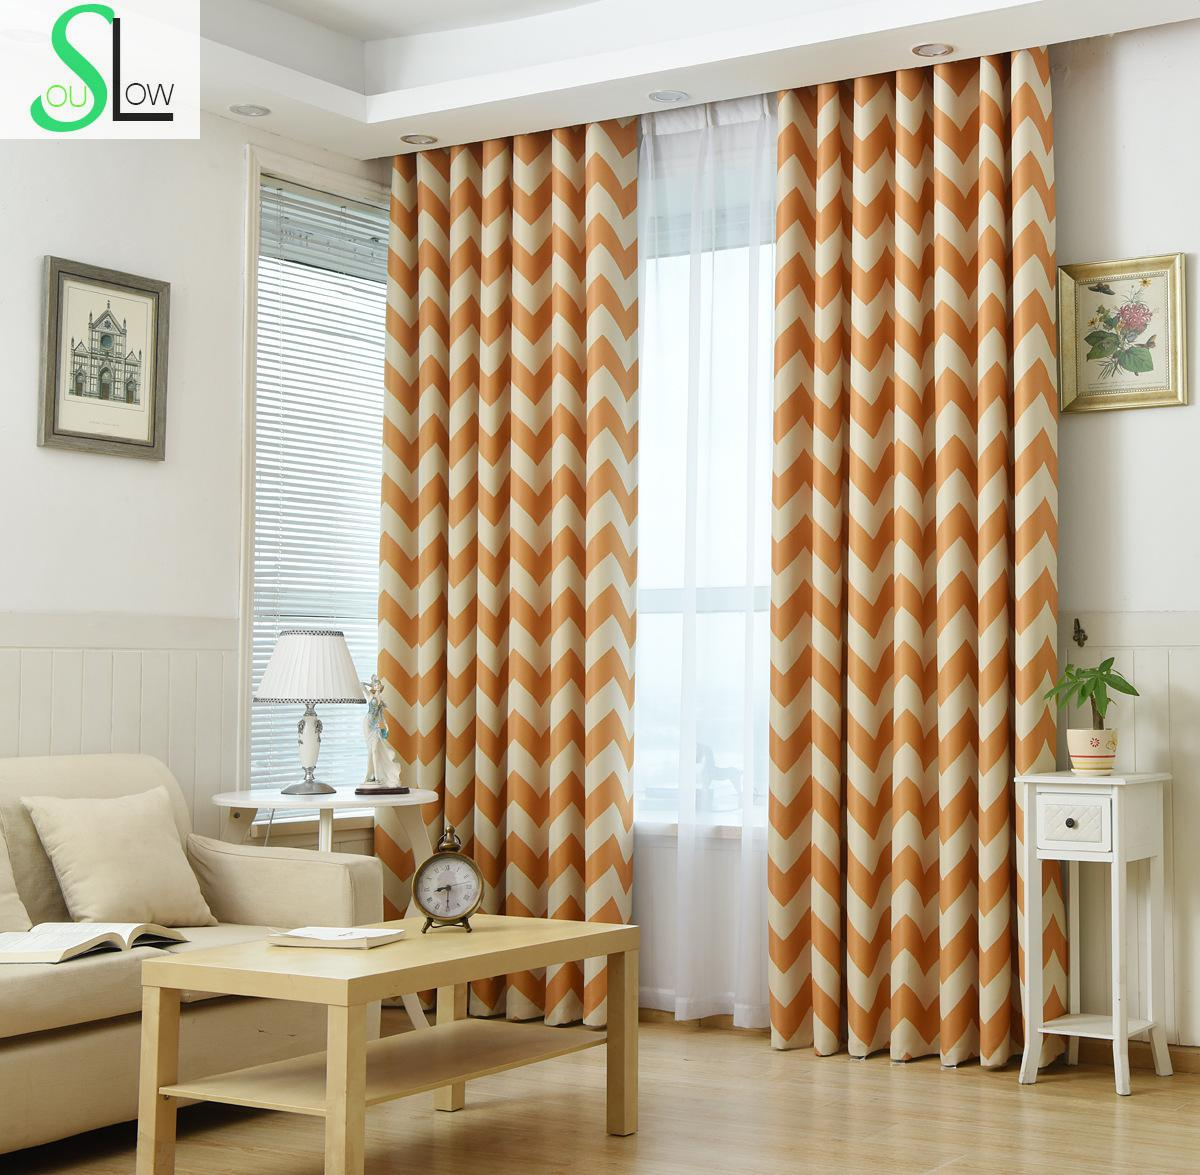 Slow Soul Light Blue Dark Yellow Curtain Printed Striped Cortinas Curtains  For Living Room Kitchen Bedroom Blinds Stripes In Curtains From Home U0026  Garden On ...